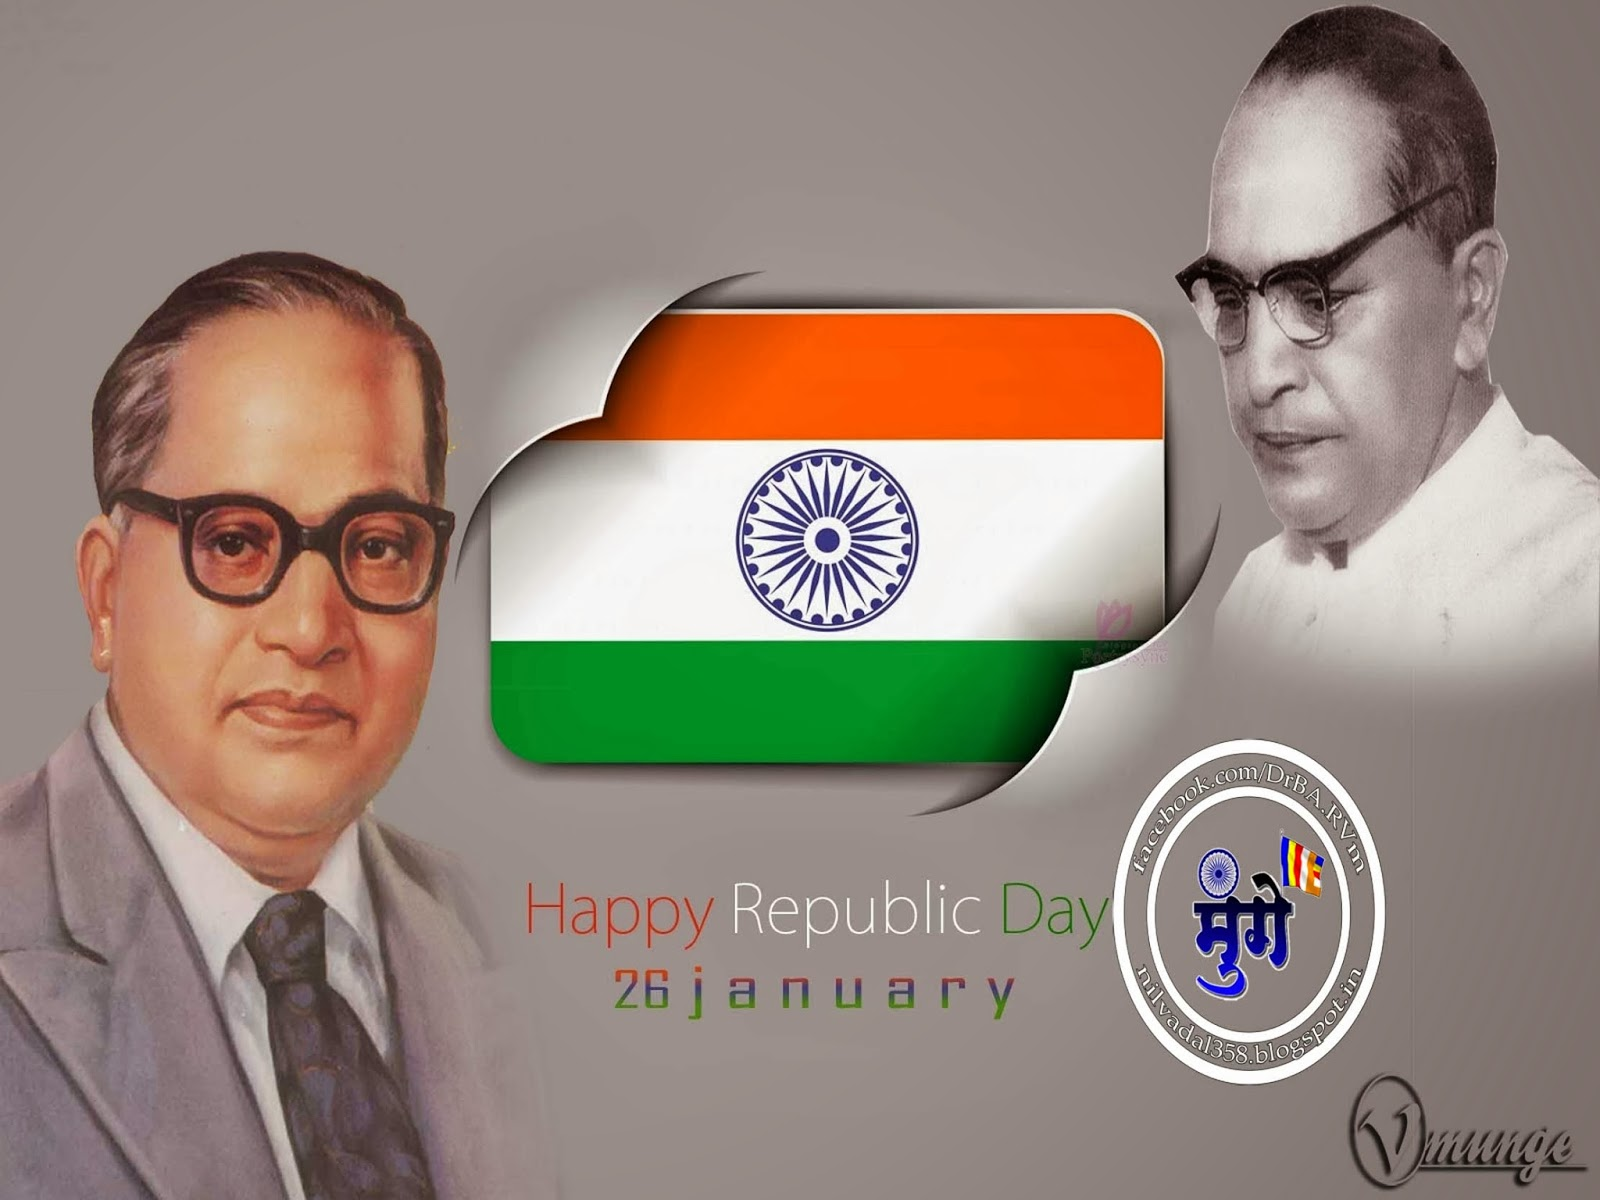 Republic Day Father Of Indian Constitution Dr.Babasaheb Ambedkar hd Wallpaper Happy republic day Dr BR Bhimrao Ramji Babasaheb Ambedkar